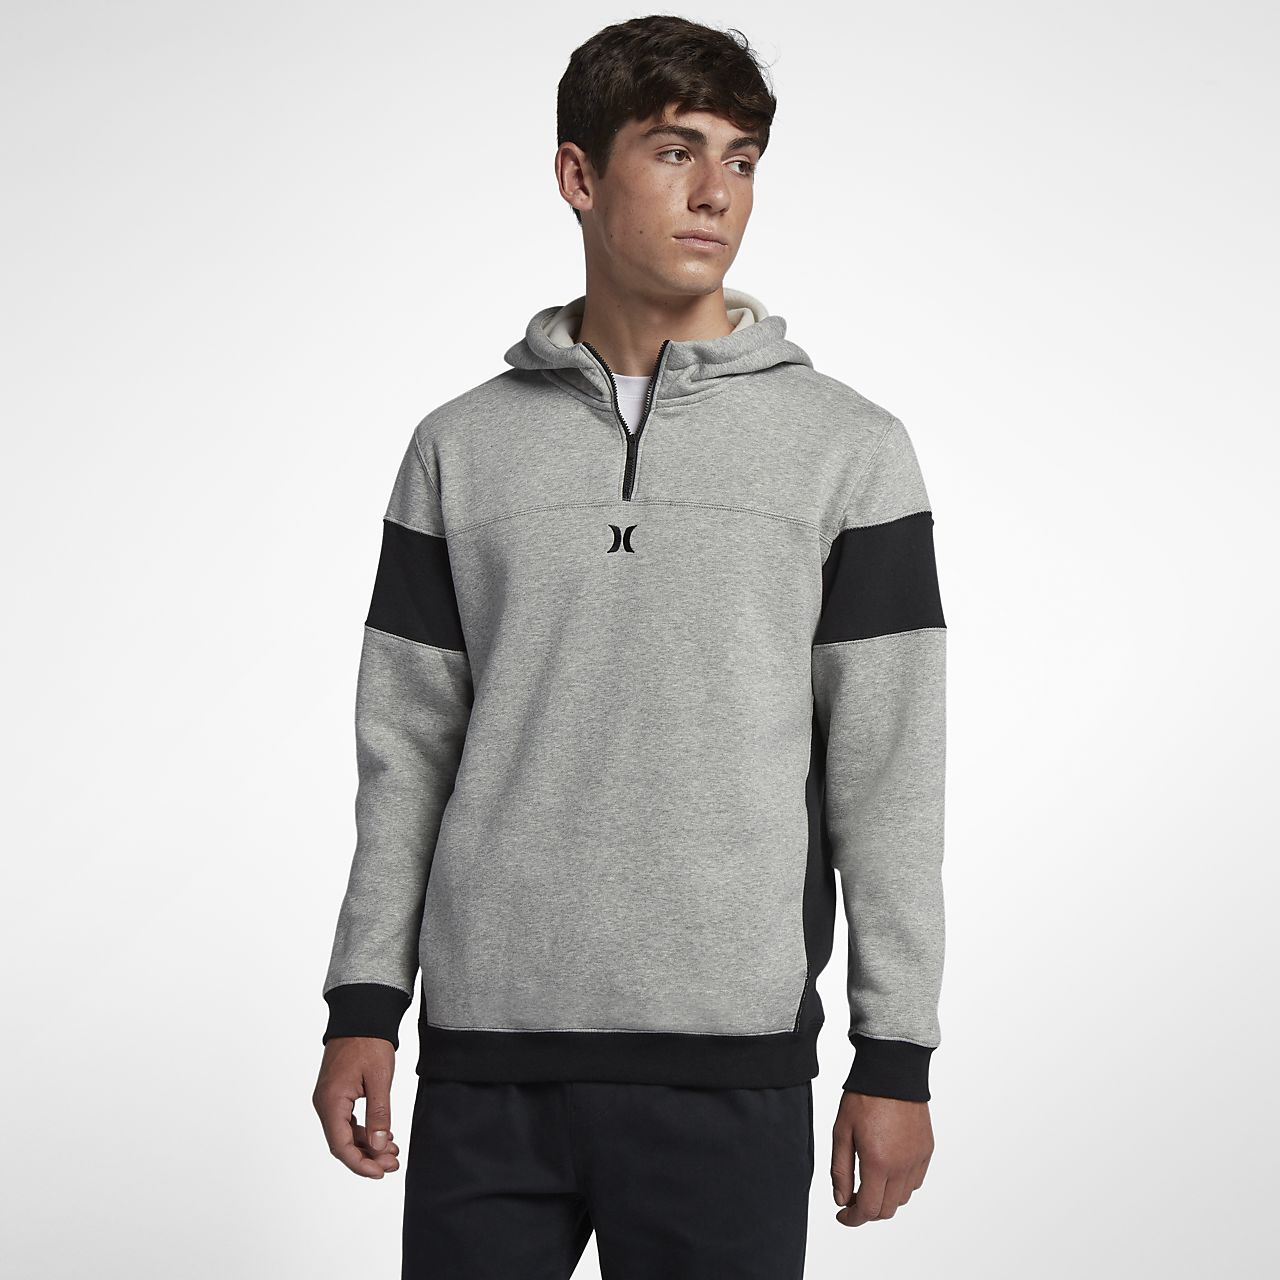 150776d037b43 Hurley Surf Check Quarter-Zip Pullover Men s Hoodie. Nike.com